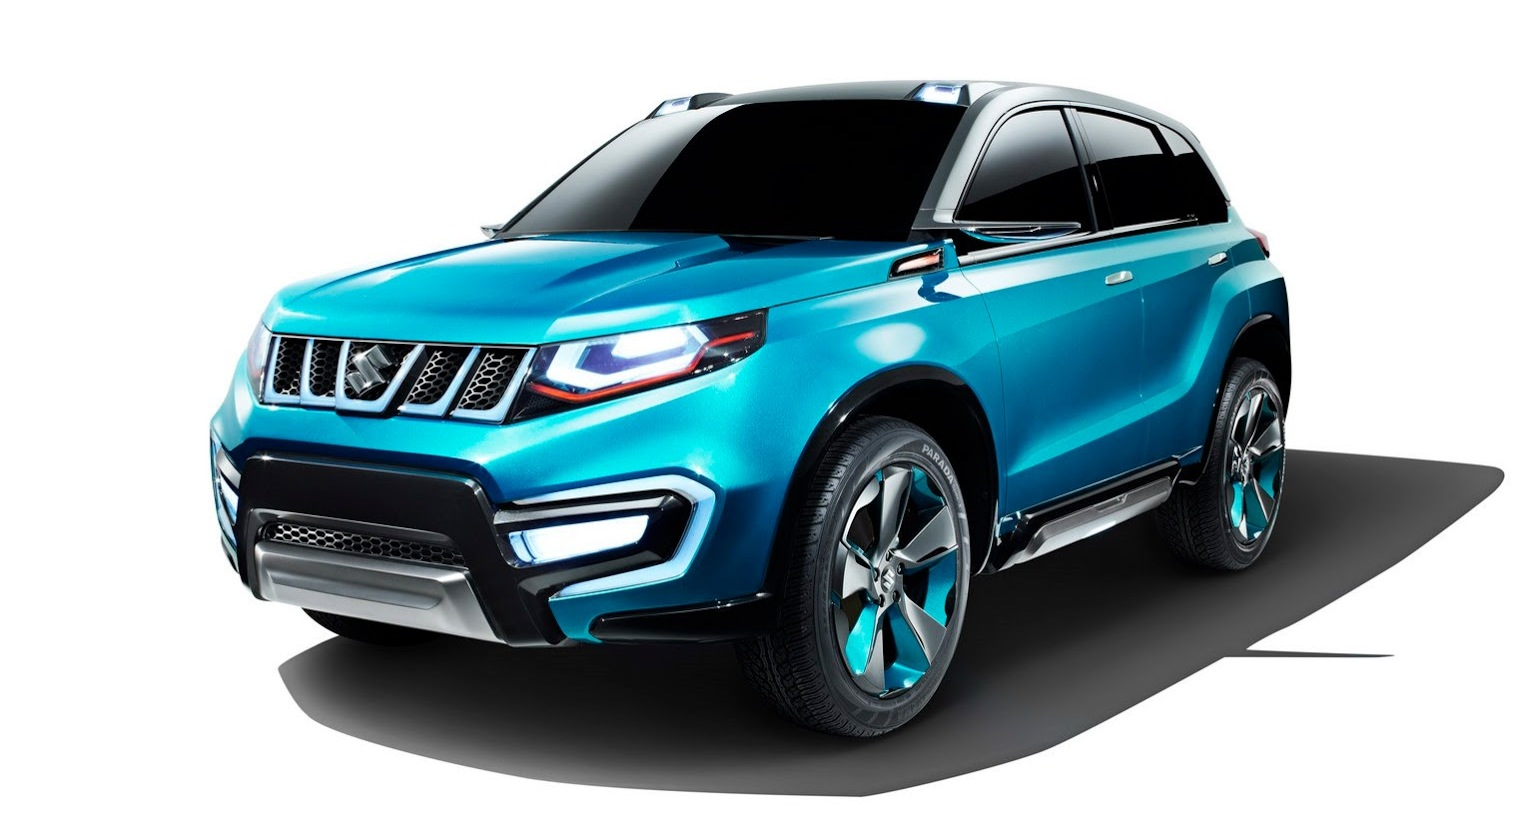 Suzuki iv 4 suv production version due here in 2015 photos 1 of 2